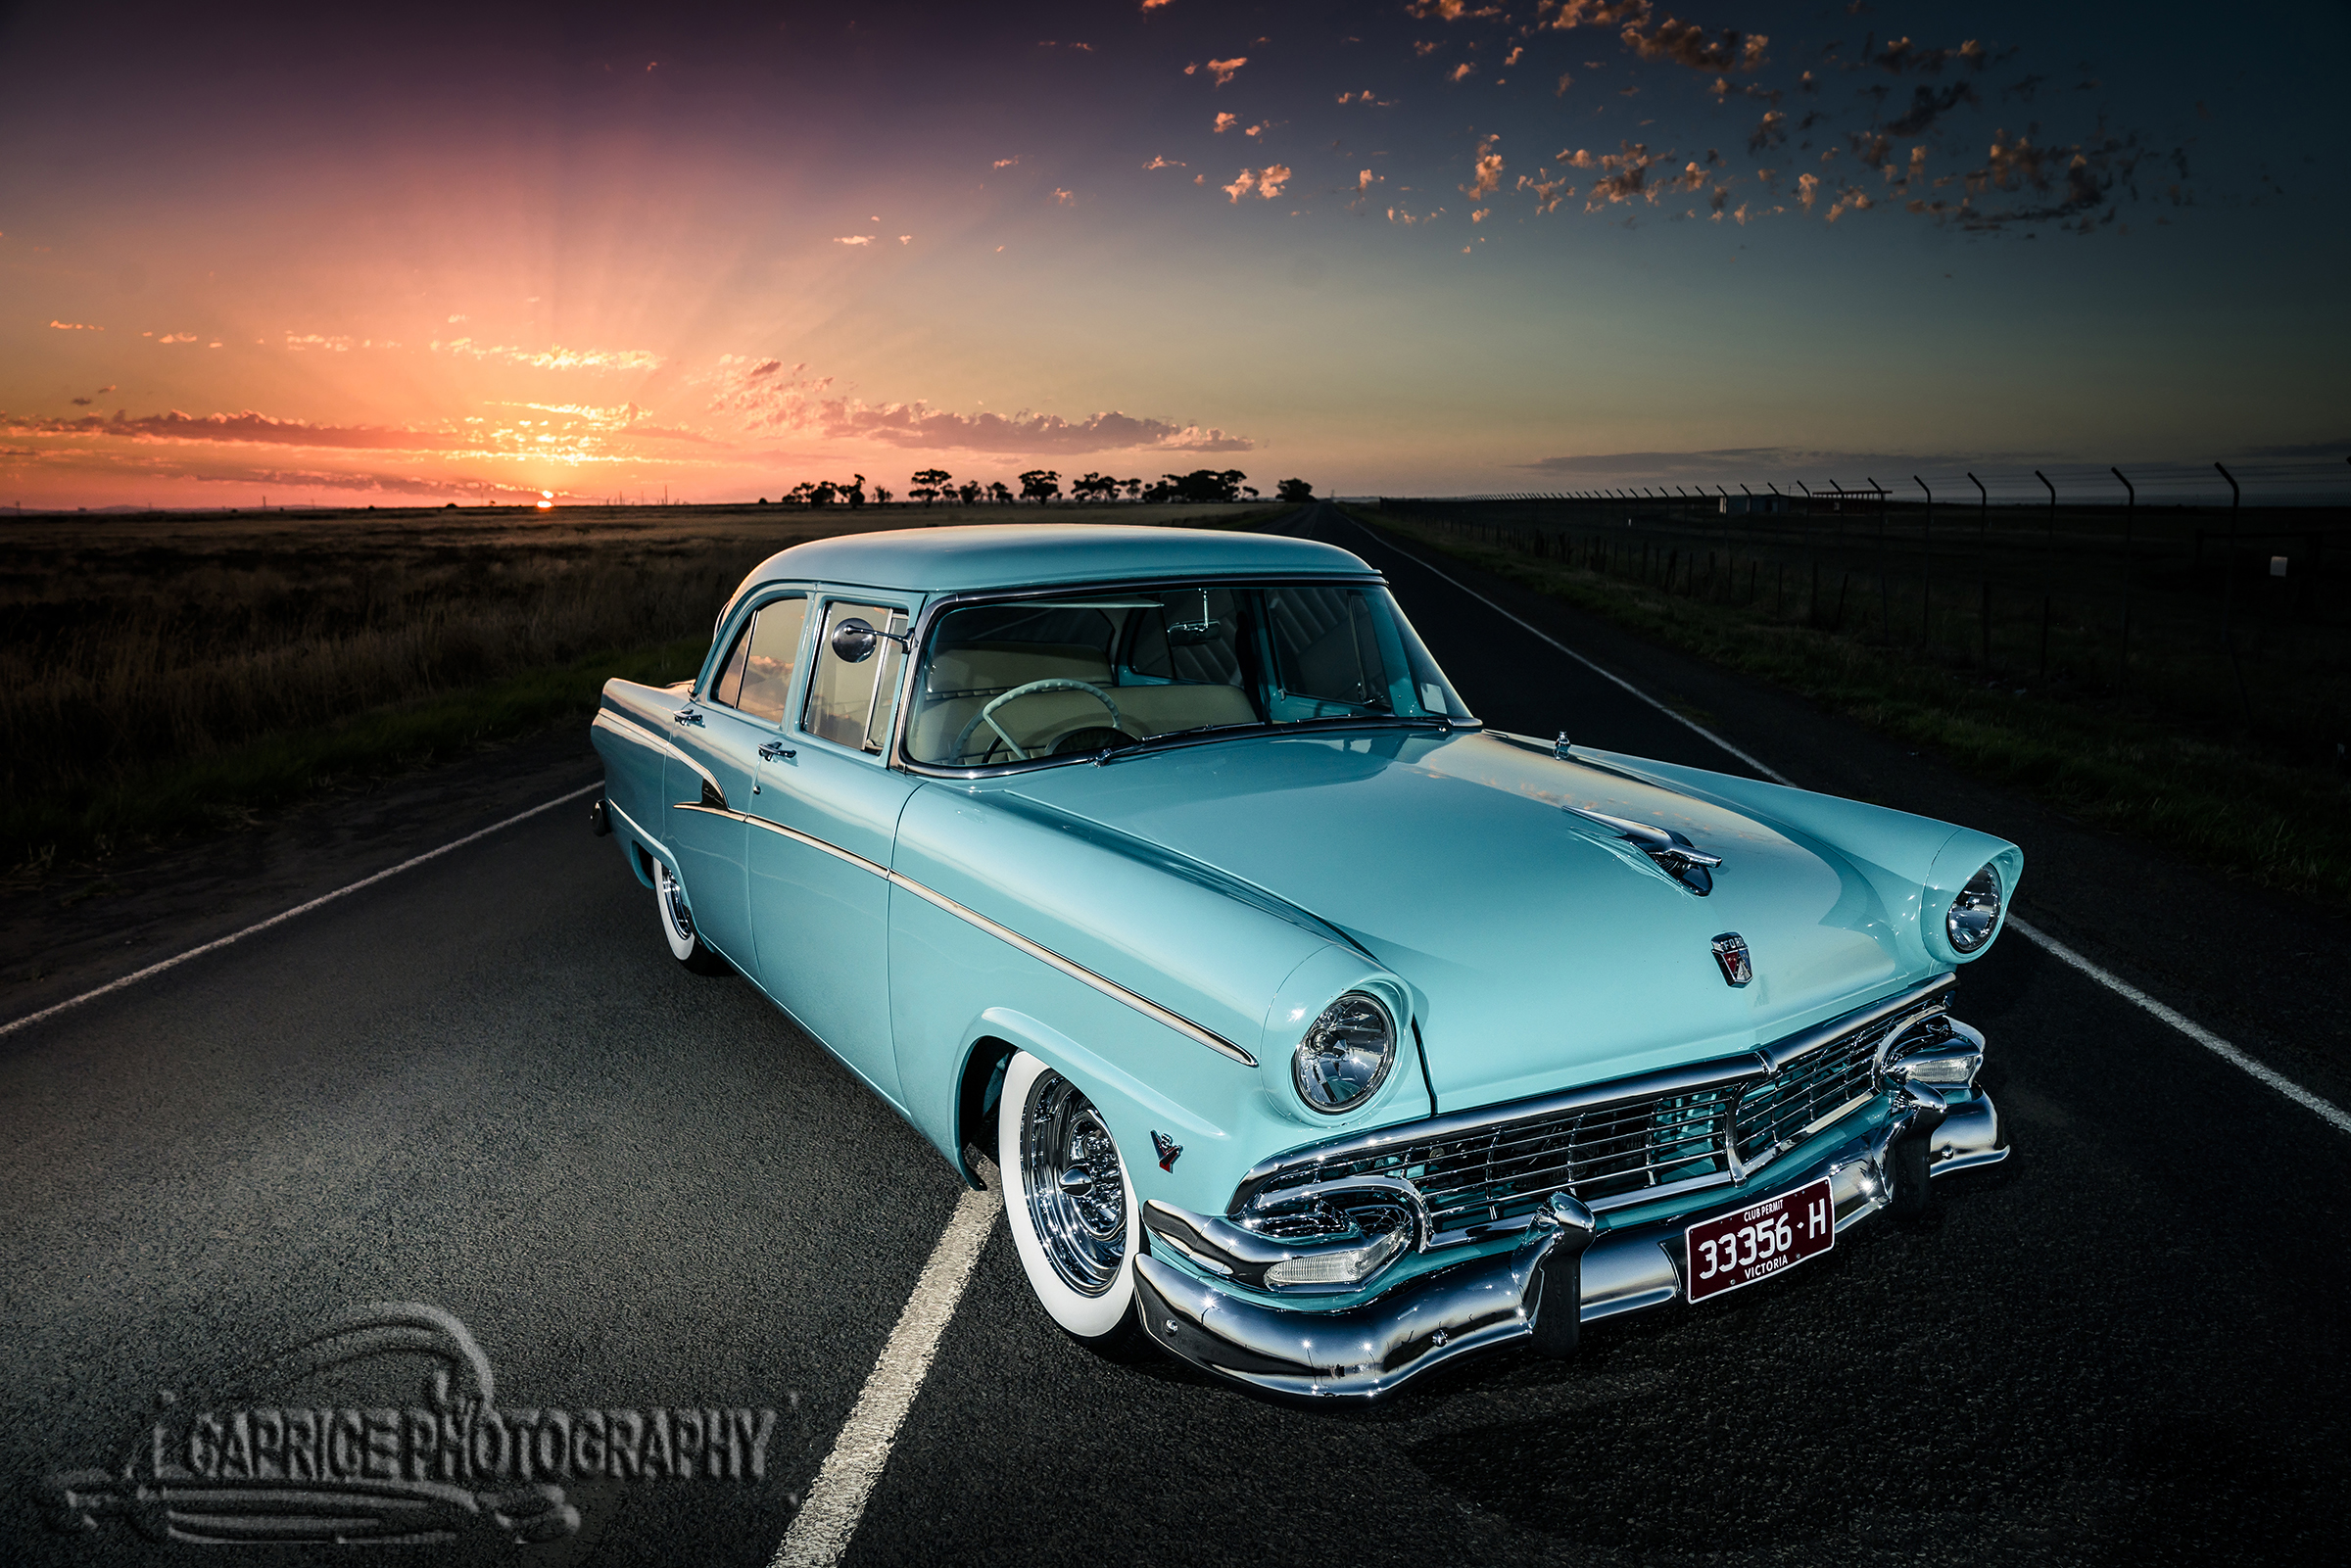 Classic Custom Car Photography & Video